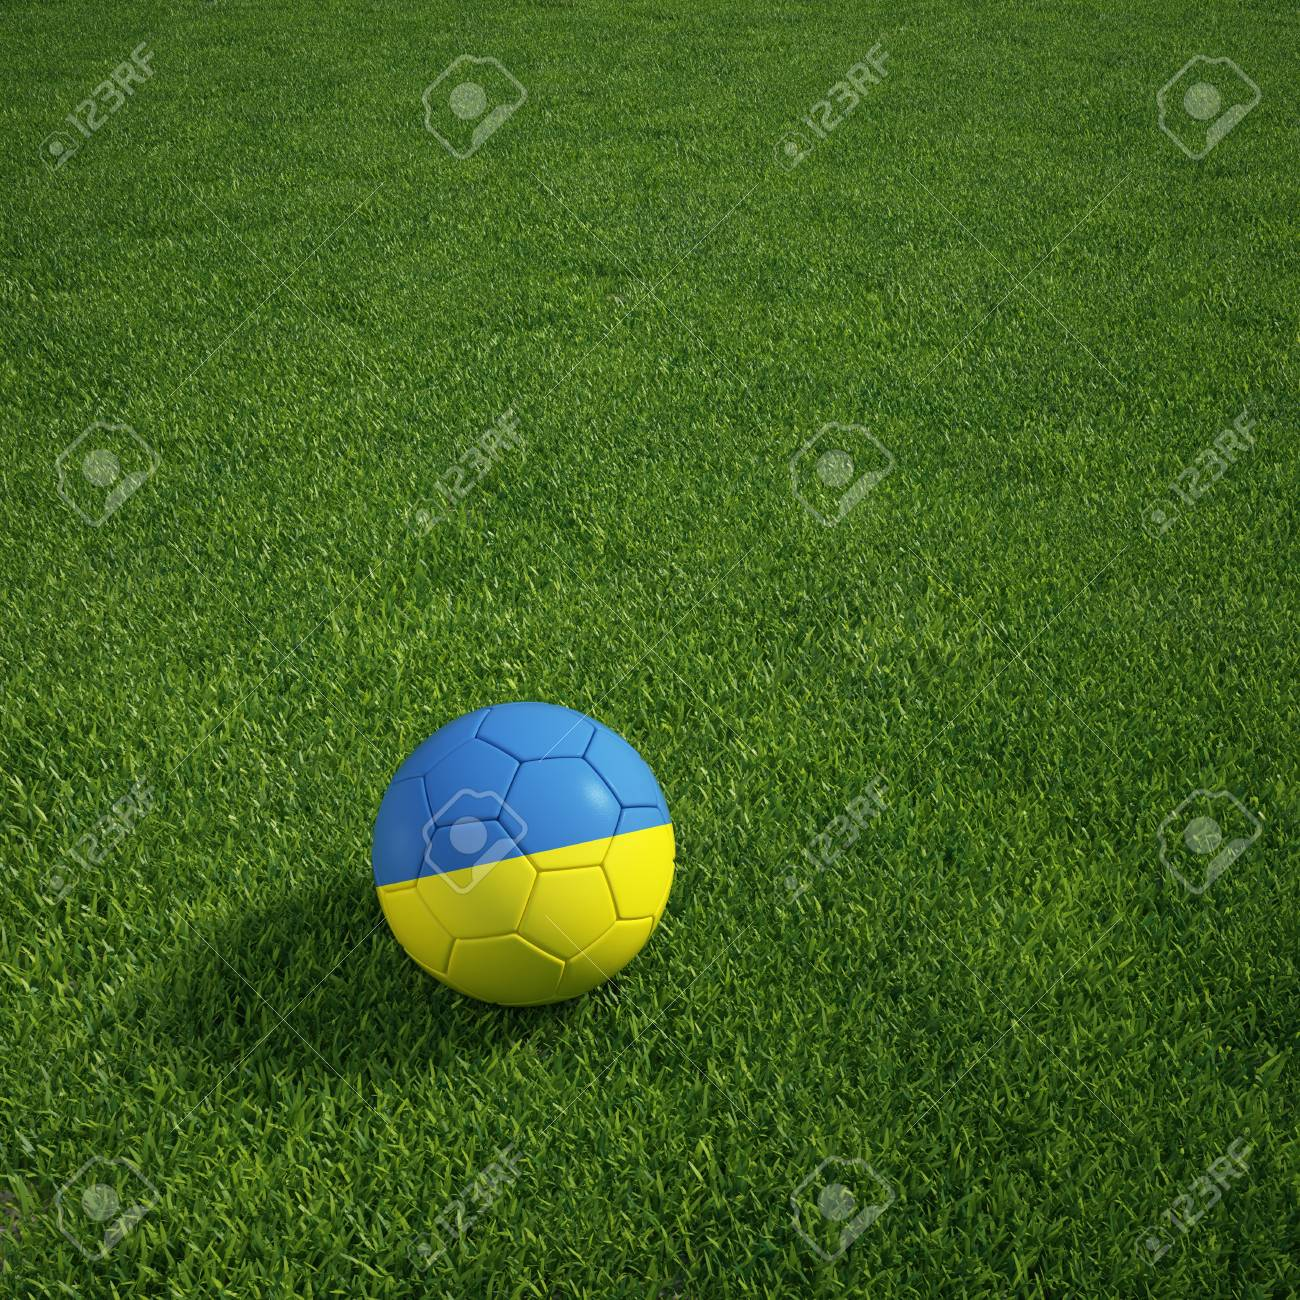 3d rendering of a Ukrainian soccerball lying on grass Stock Photo - 12905400